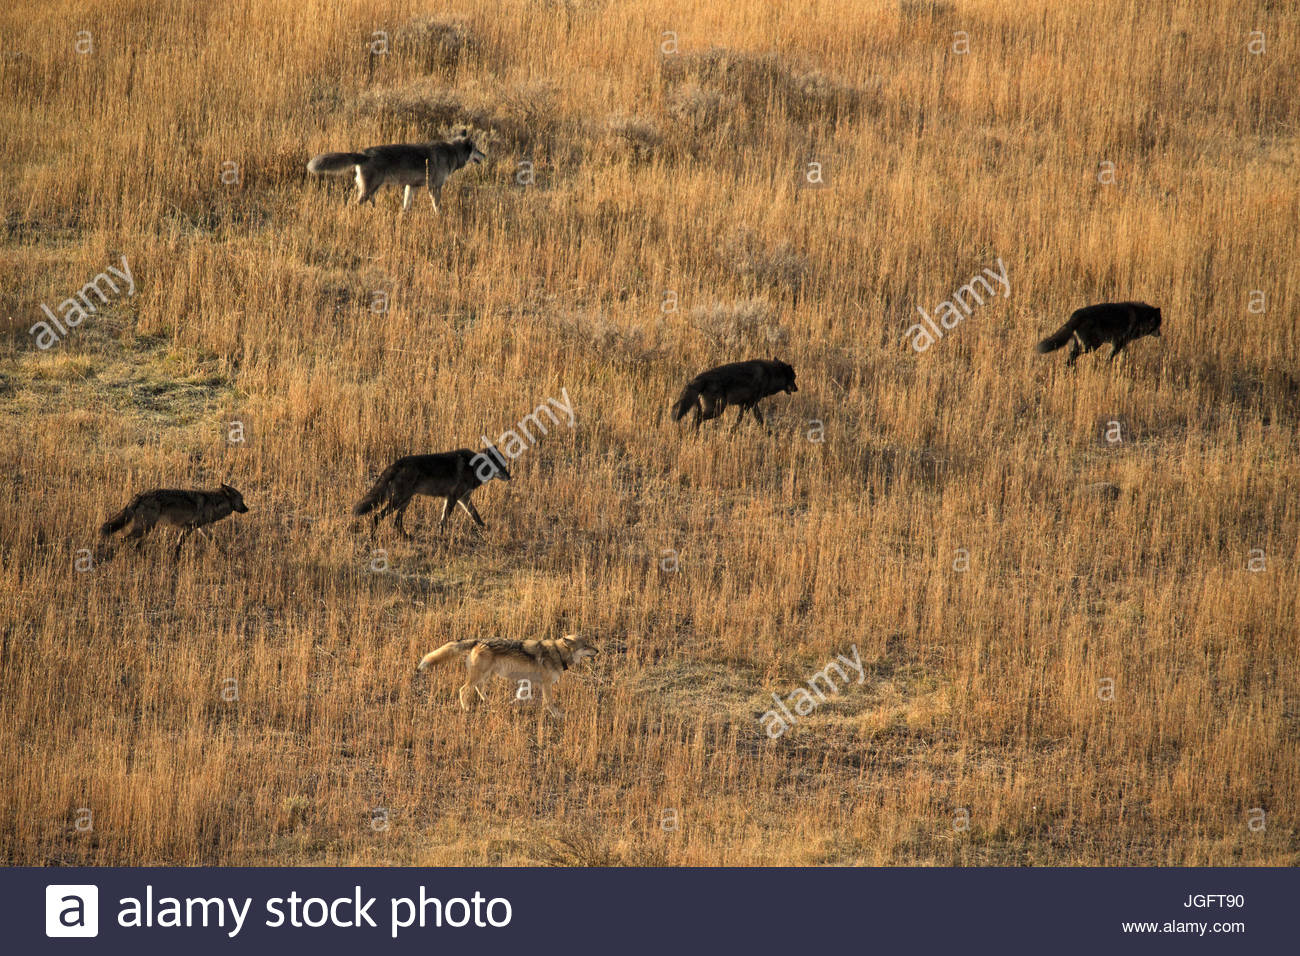 Gray wolves from the Eight Mile wolf pack on the move in Yellowstone National Park, Wyoming. - Stock Image